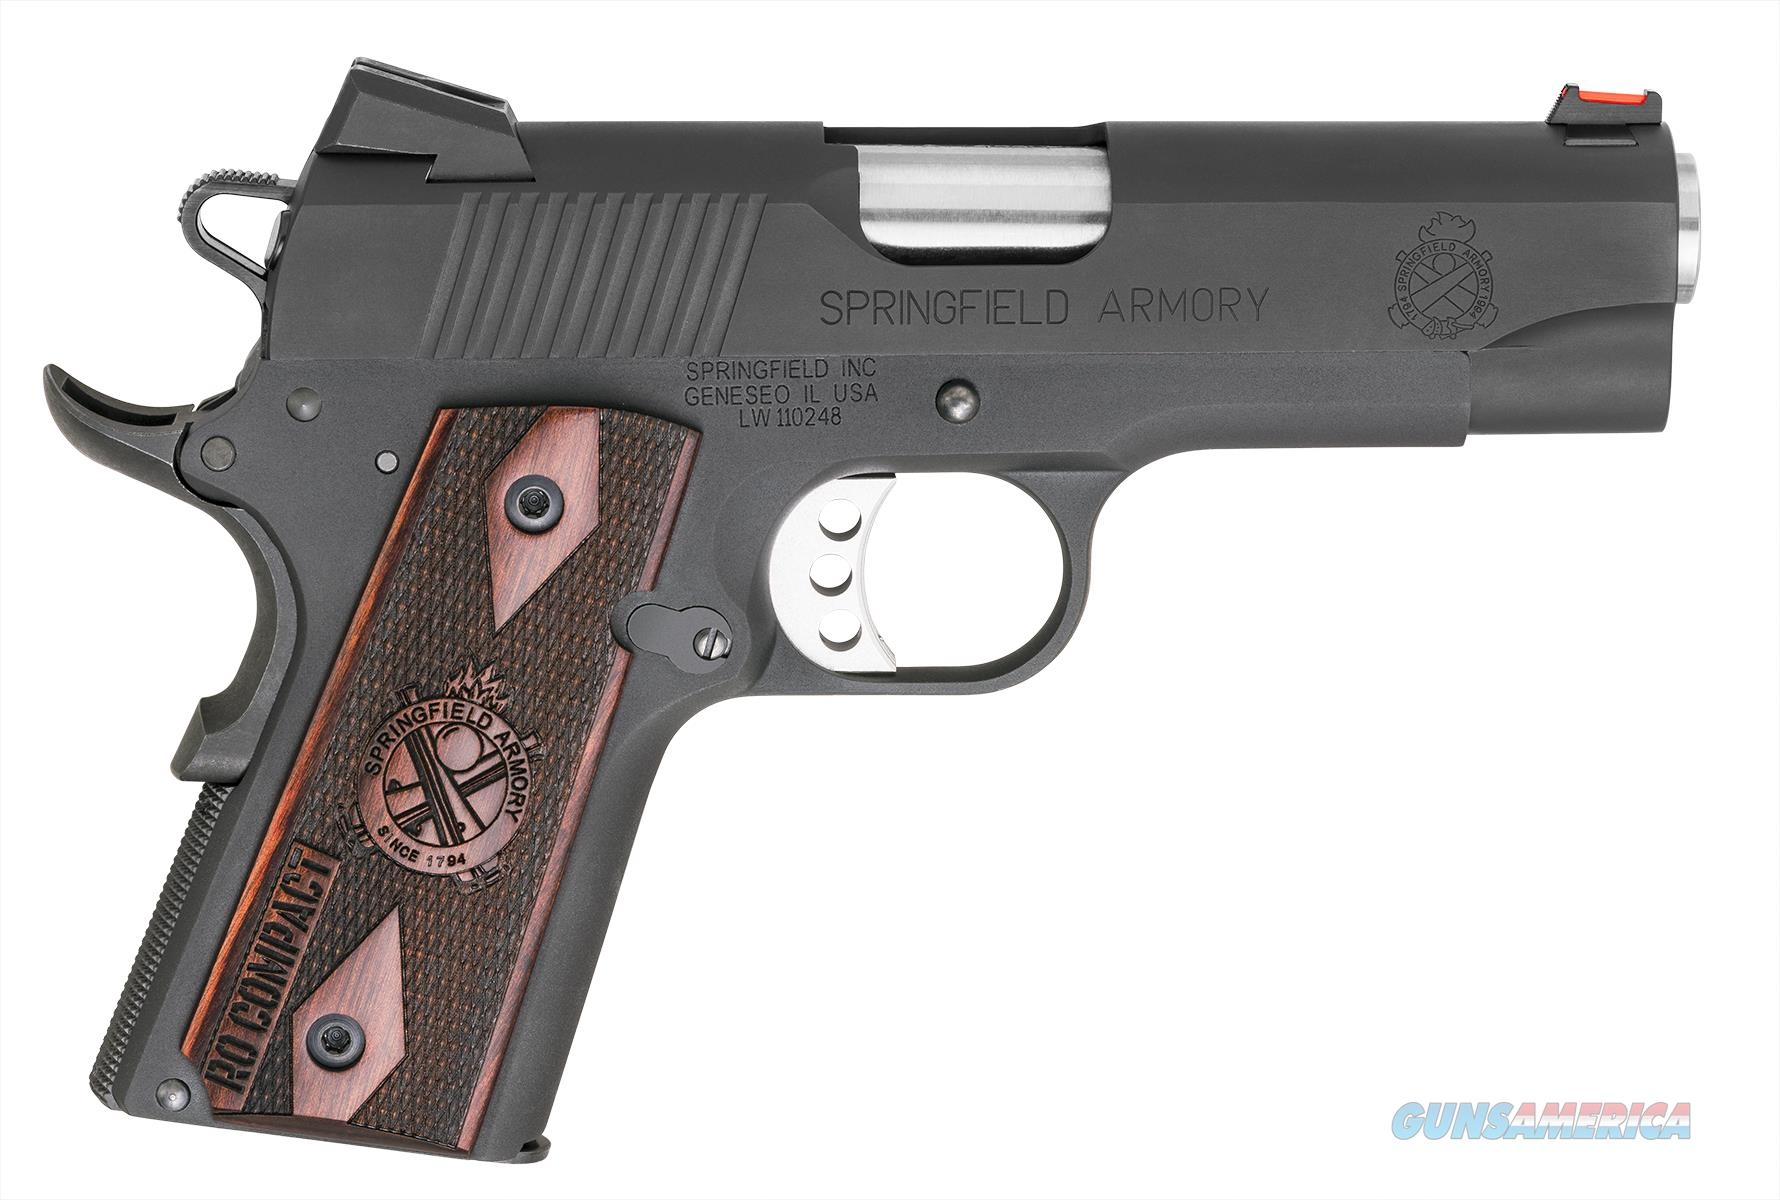 "Springfield 1911 Range Officer Compact .45 ACP 4"" PI9126L   Guns > Pistols > Springfield Armory Pistols > 1911 Type"